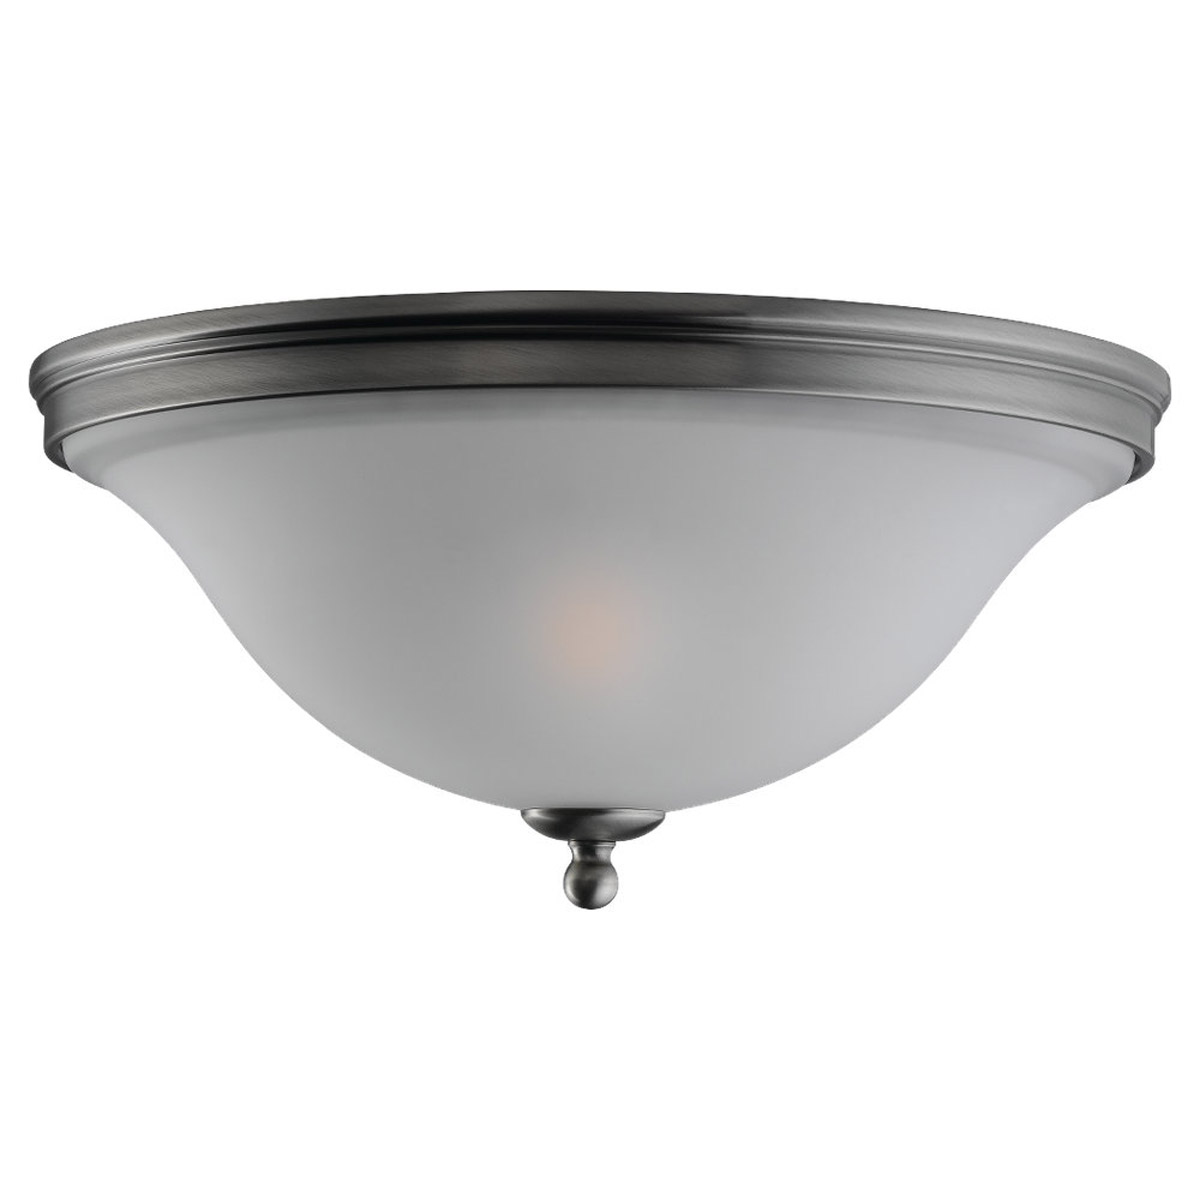 Sea Gull 75850-965 Gladstone 2 Light 14 inch Antique Brushed Nickel Flush Mount Ceiling Light in Satin Etched Glass photo